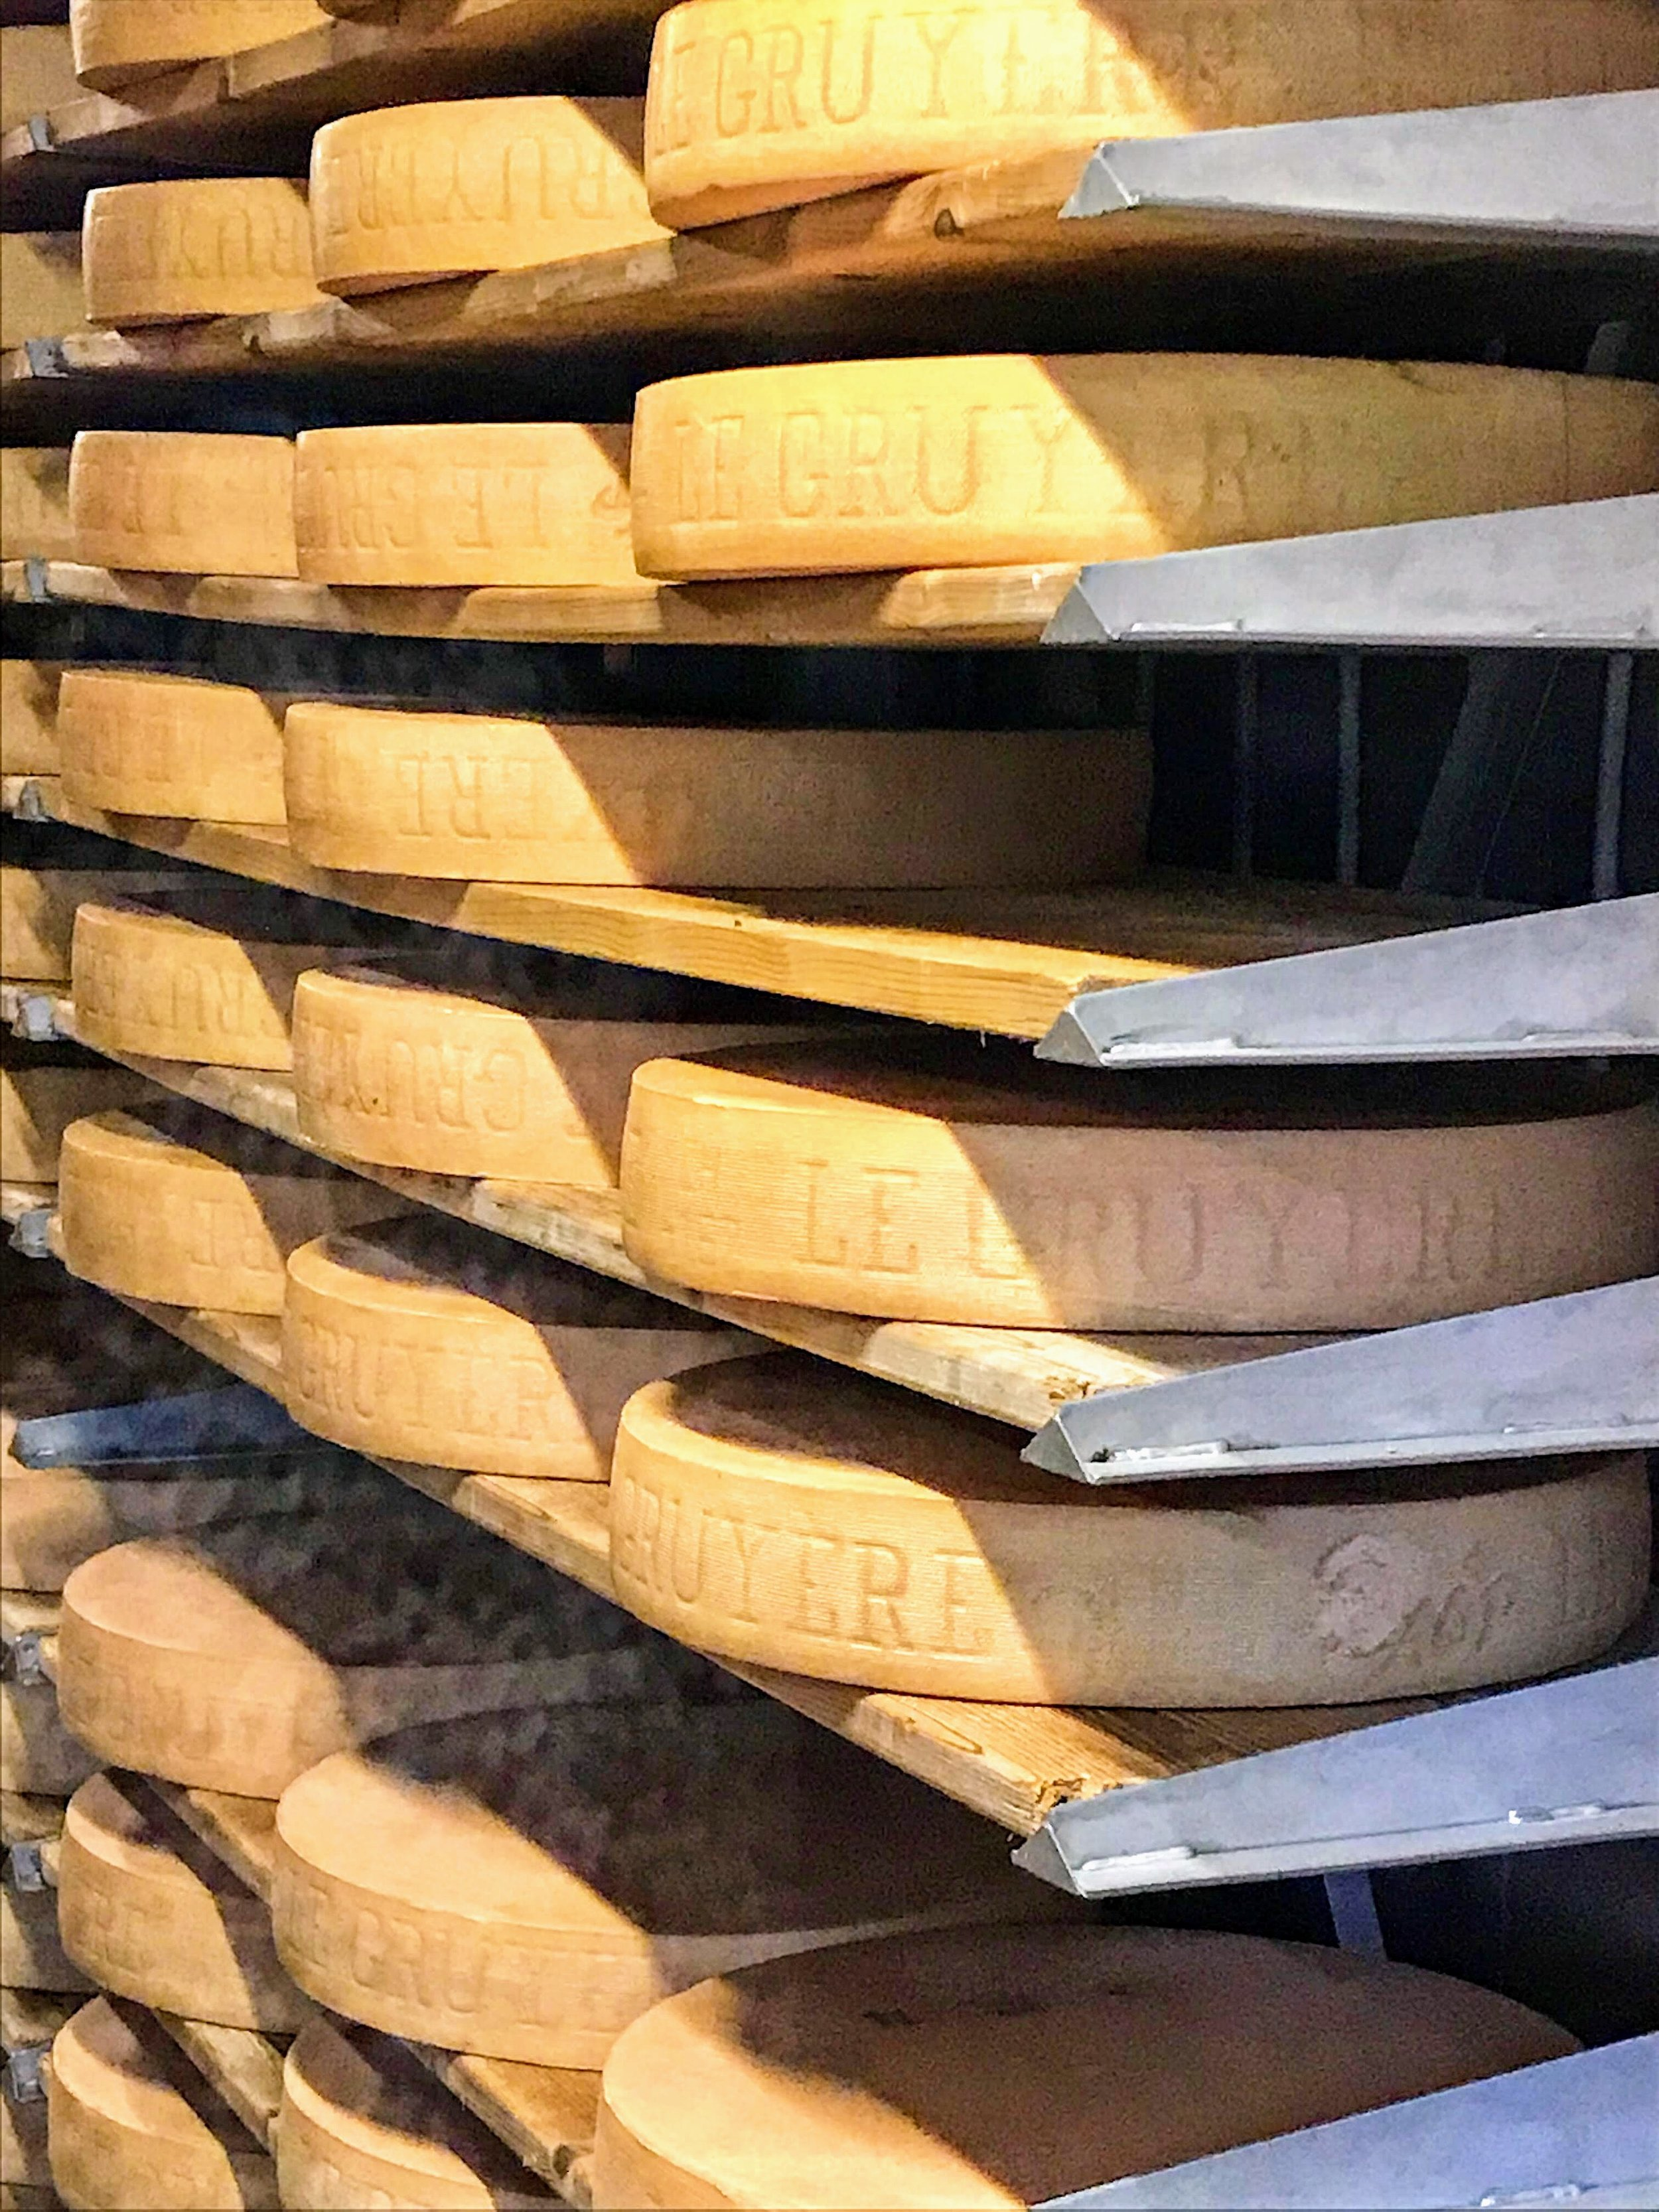 Wheels of gruyere cheese aging up to 24 months; gruyere cheesemakers in photos below